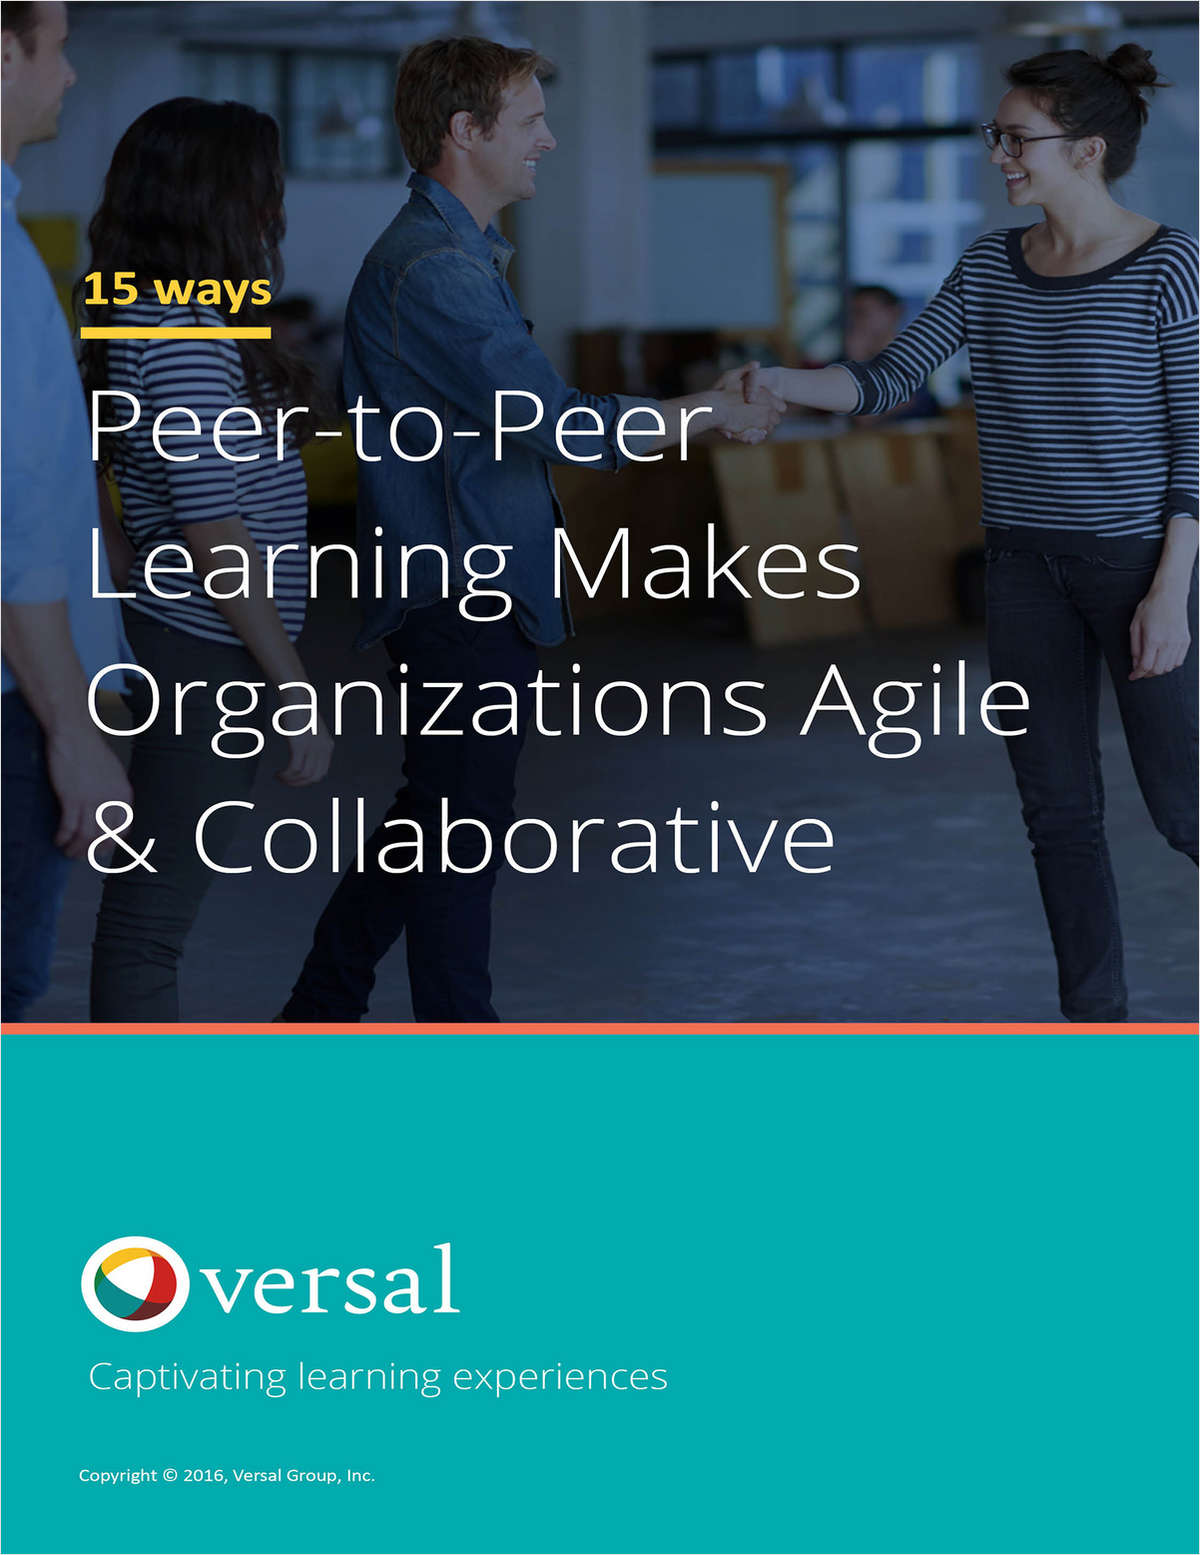 Peer-to-Peer Learning Makes Organizations Agile & Collaborative